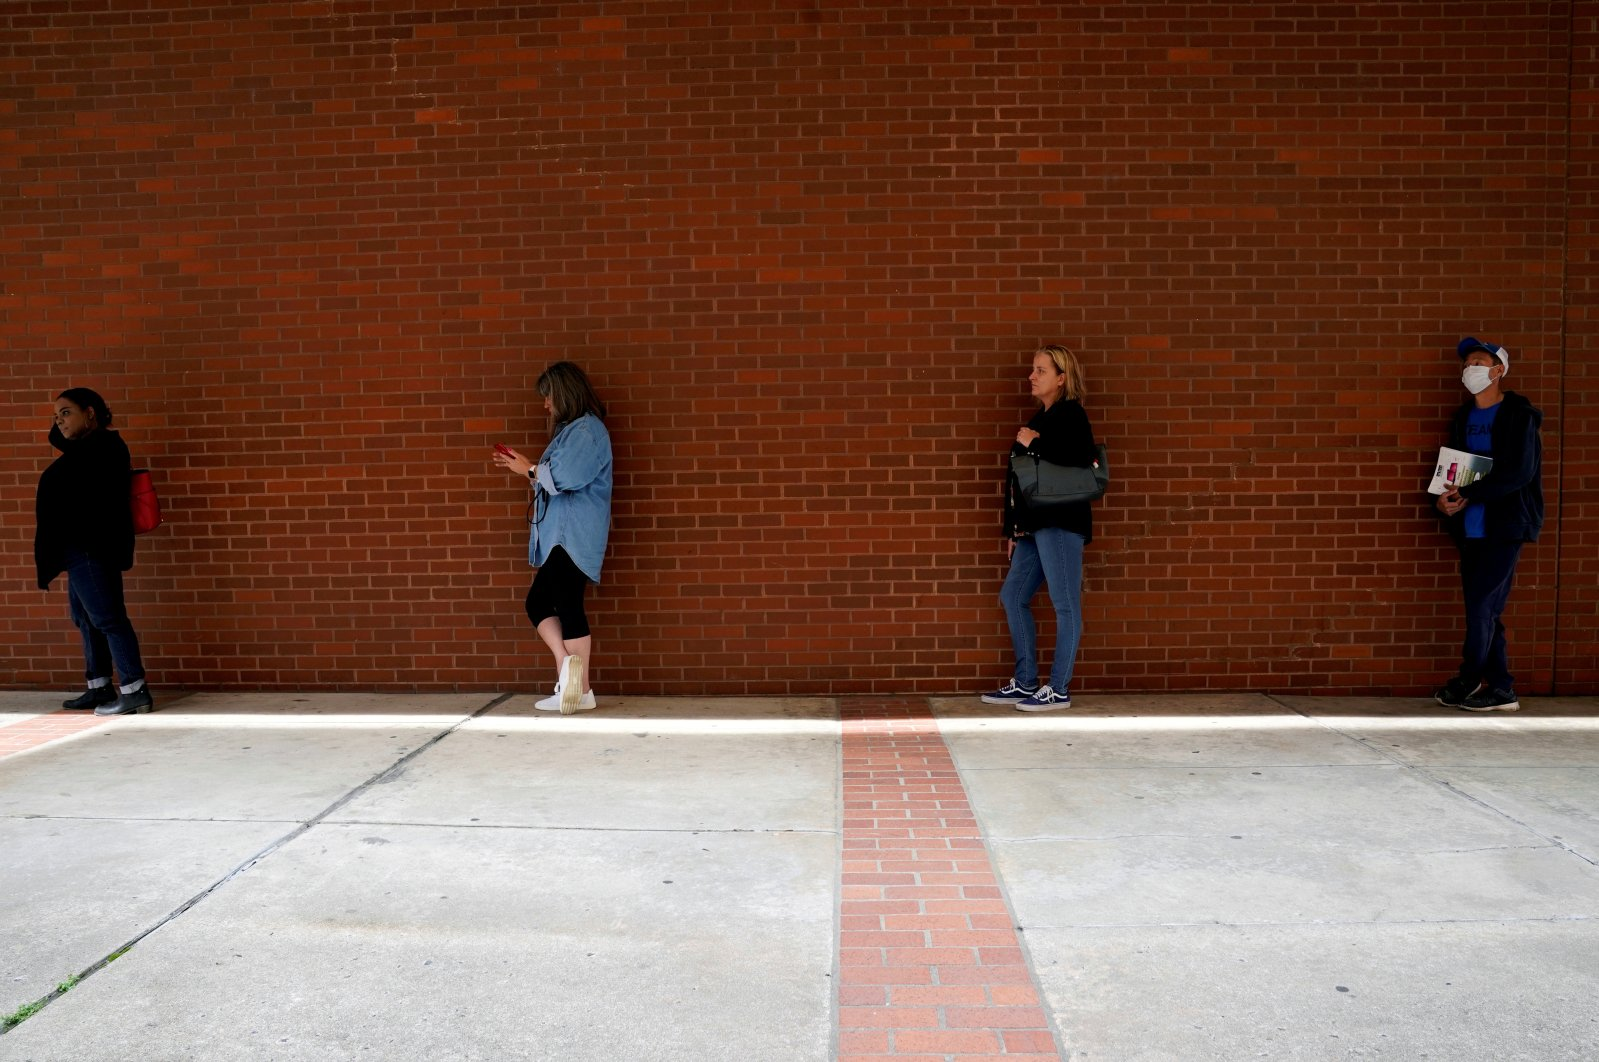 People who lost their jobs wait in line to file for unemployment benefits, following an outbreak of COVID-19, at Arkansas Workforce Center in Fort Smith, Arkansas, U.S., April 6, 2020. (Reuters Photo)